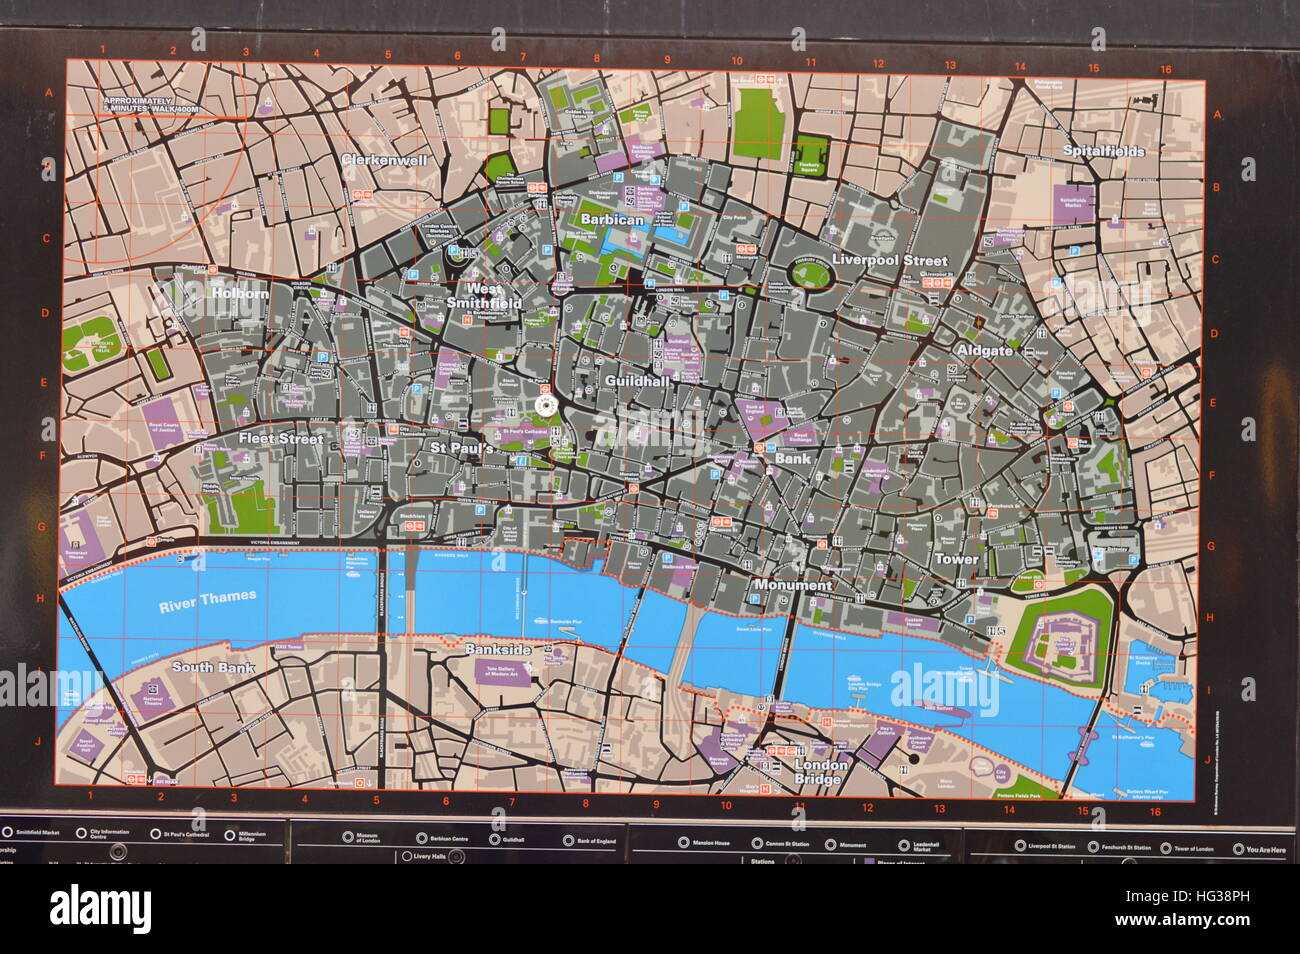 Information map showing way along the River Thames Stock Photo